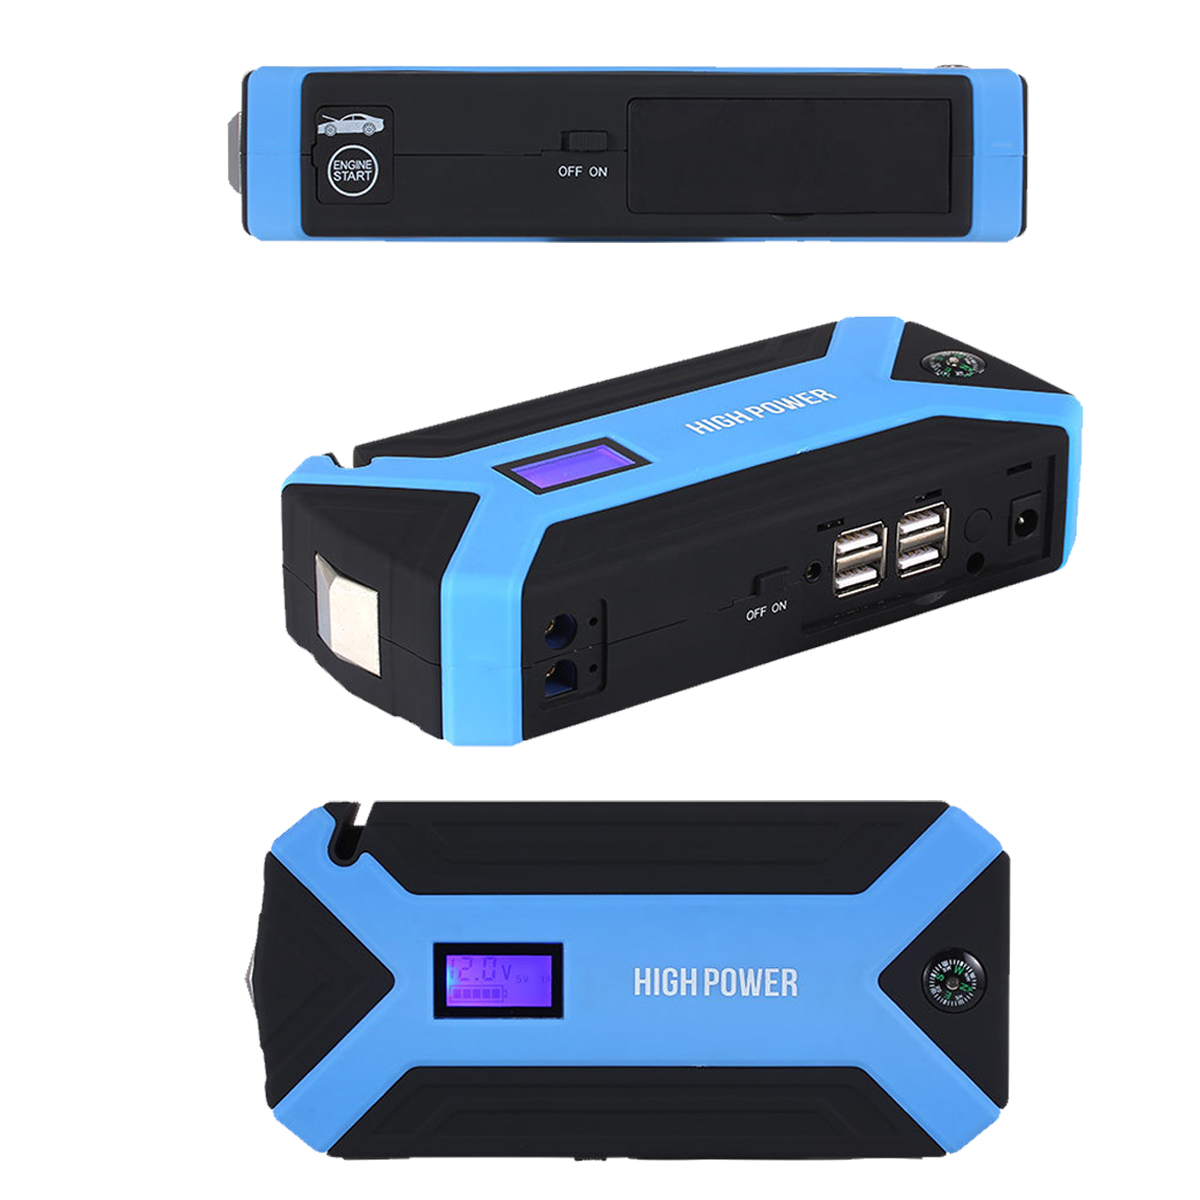 69800mAh 12V 4USB Car Jump Starter Booster Charger Battery Power Bank LED Flashlight